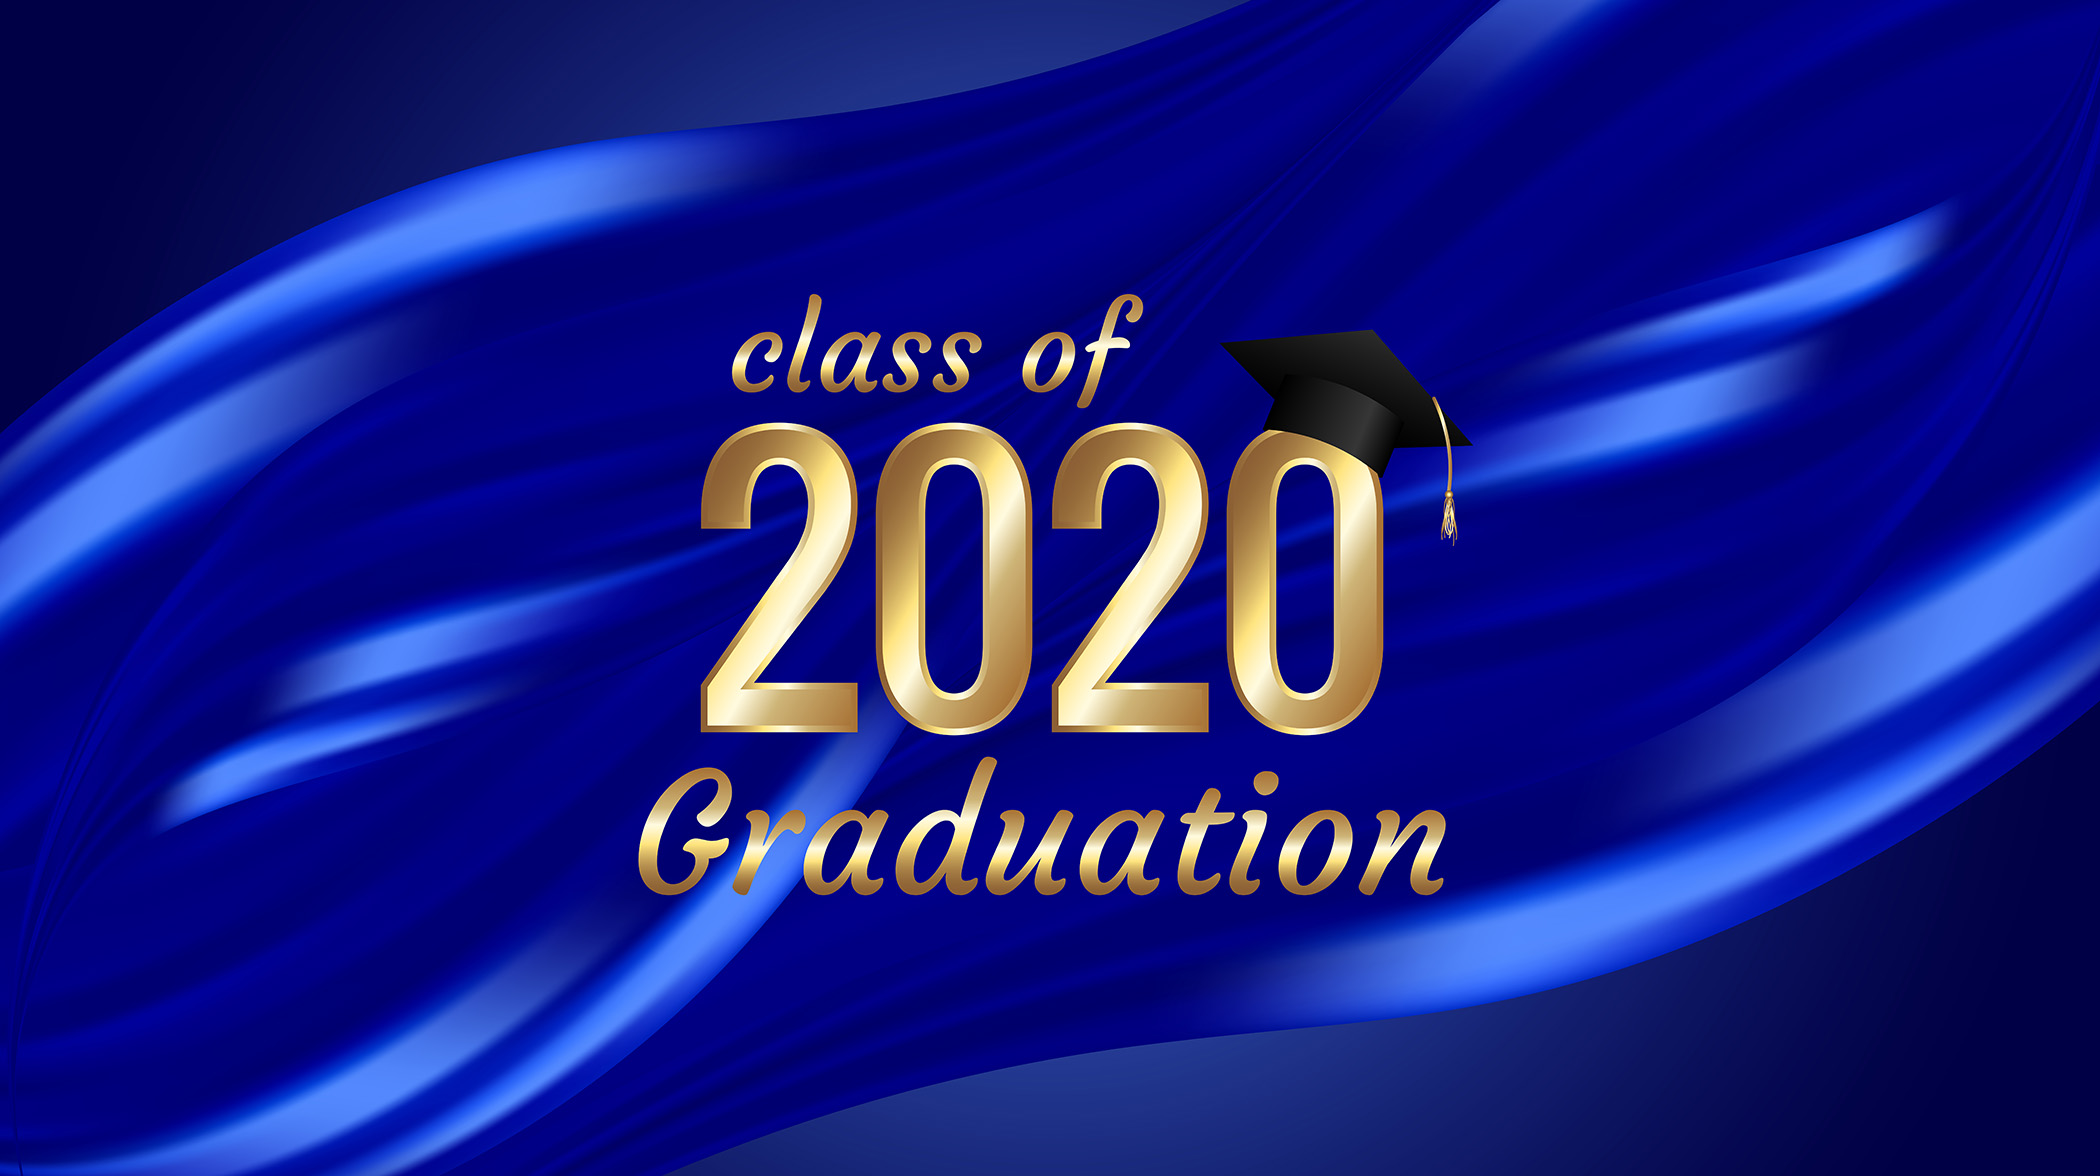 This is a graphic for the Class of 2020 Graduation.